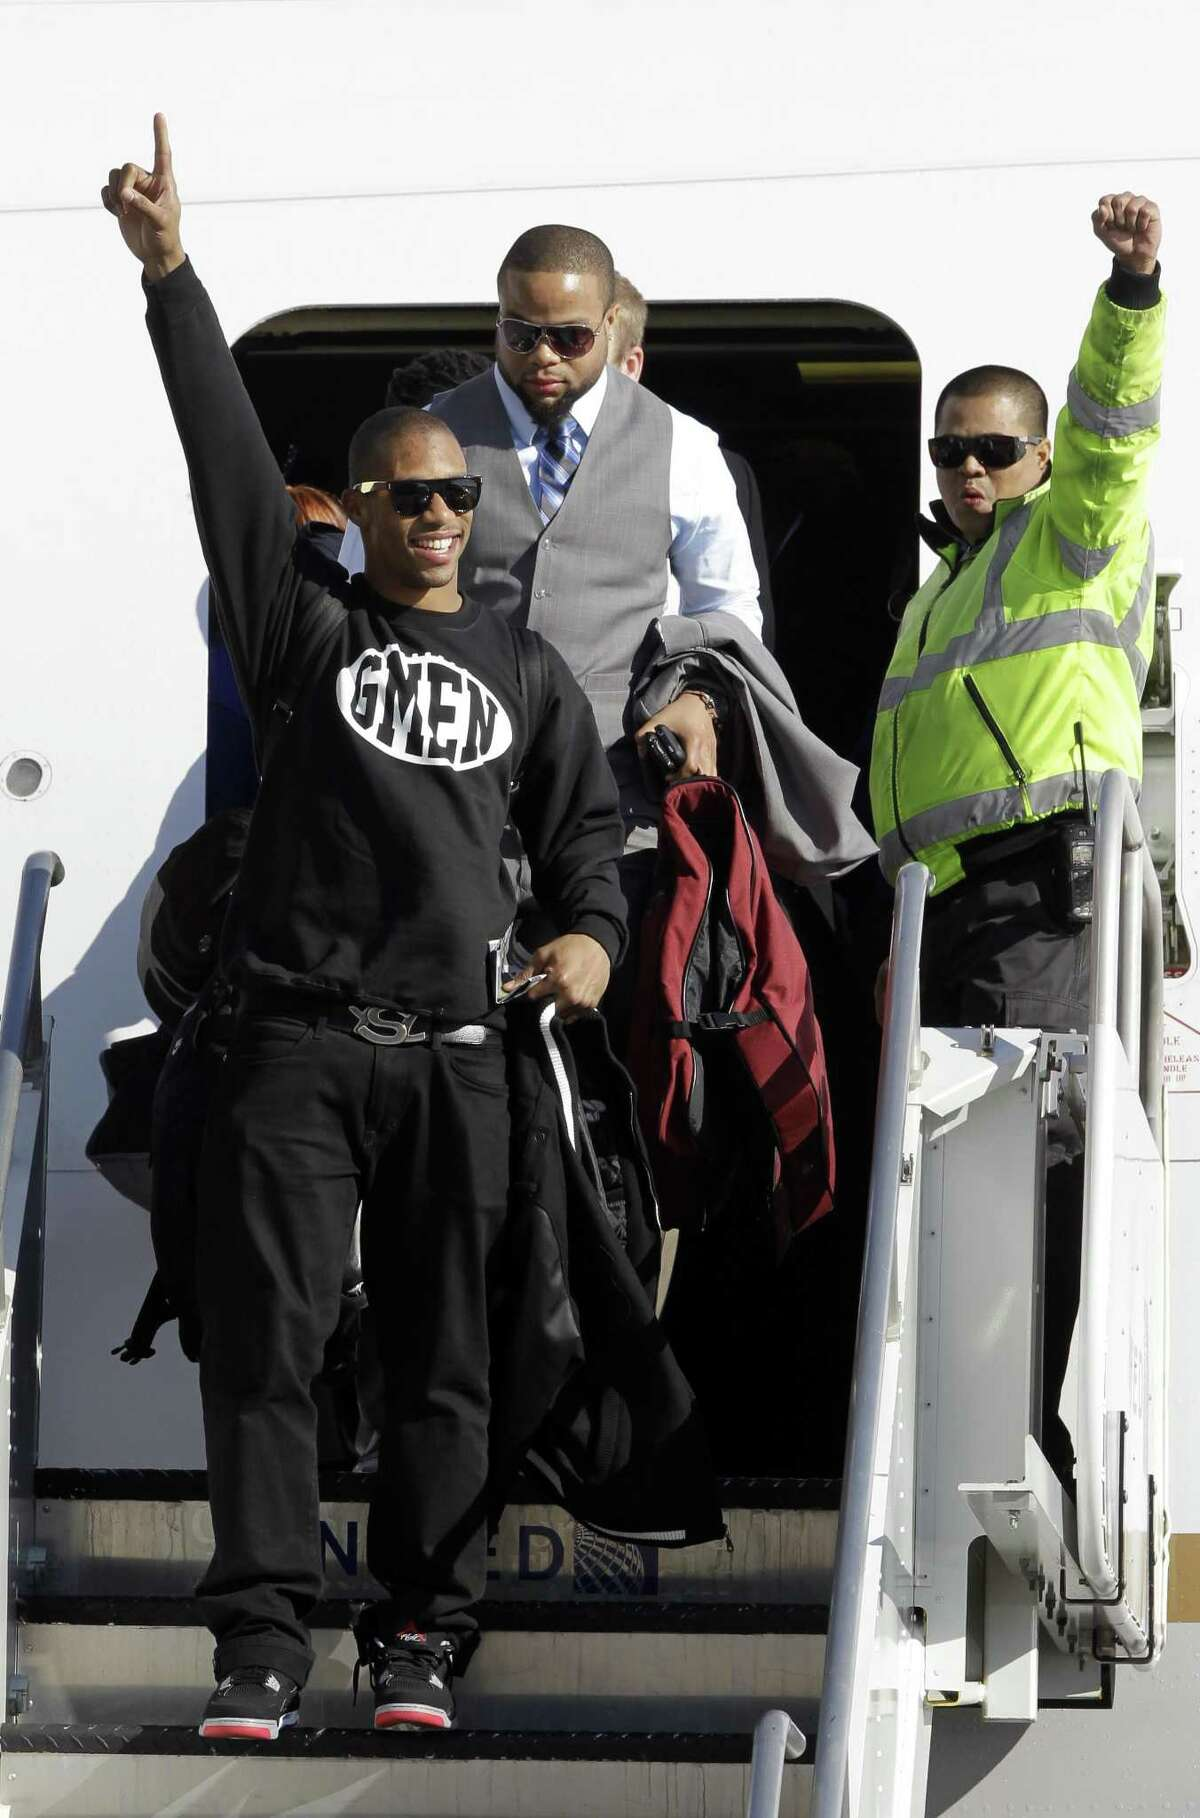 New York Giants wide receiver Victor Cruz, left, arrives with his NFL football team at Newark Liberty International Airport, Monday, Feb. 6, 2012, in Newark, N.J. A day earlier, the Giants beat the New England Patriots in Super Bowl XLVI. (AP Photo/Julio Cortez)